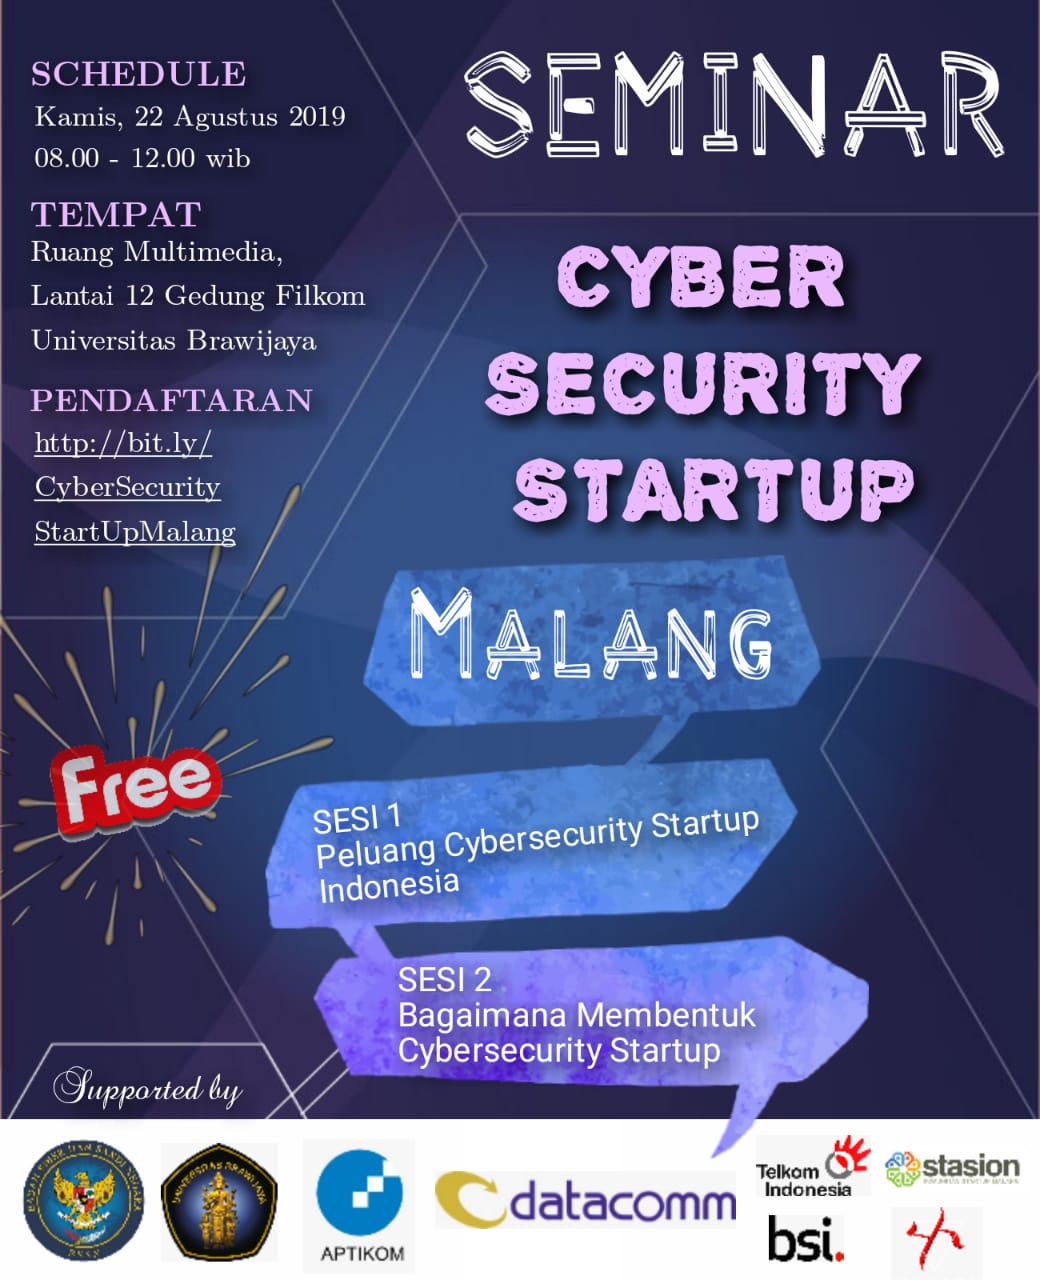 20_seminar_cyber_security_startup